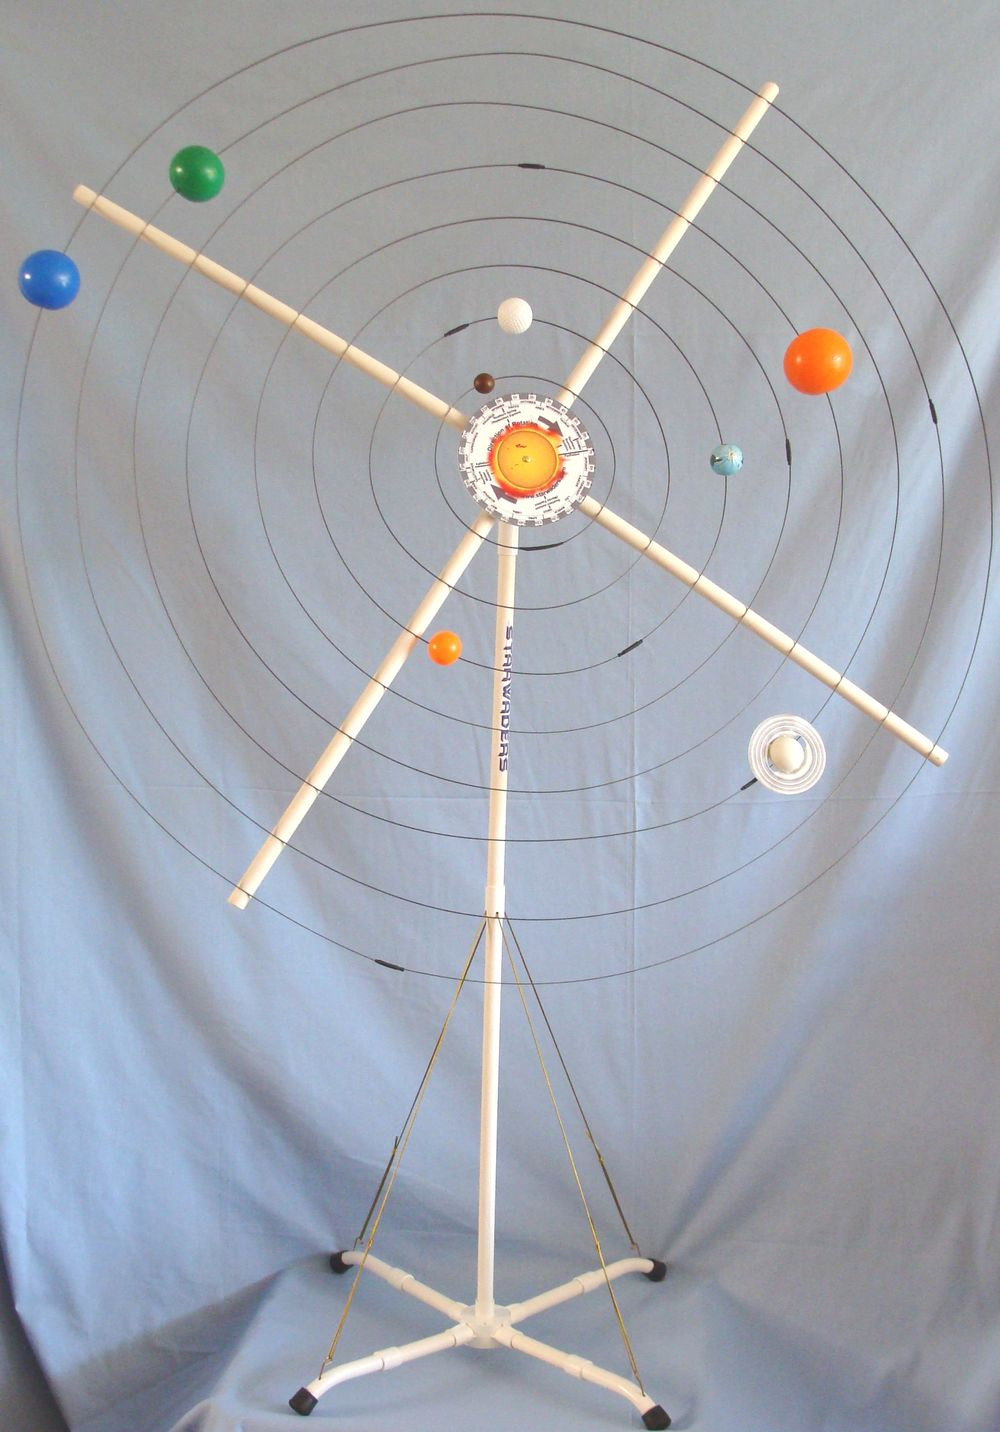 3D Solar System Model Ideas - Pics about space